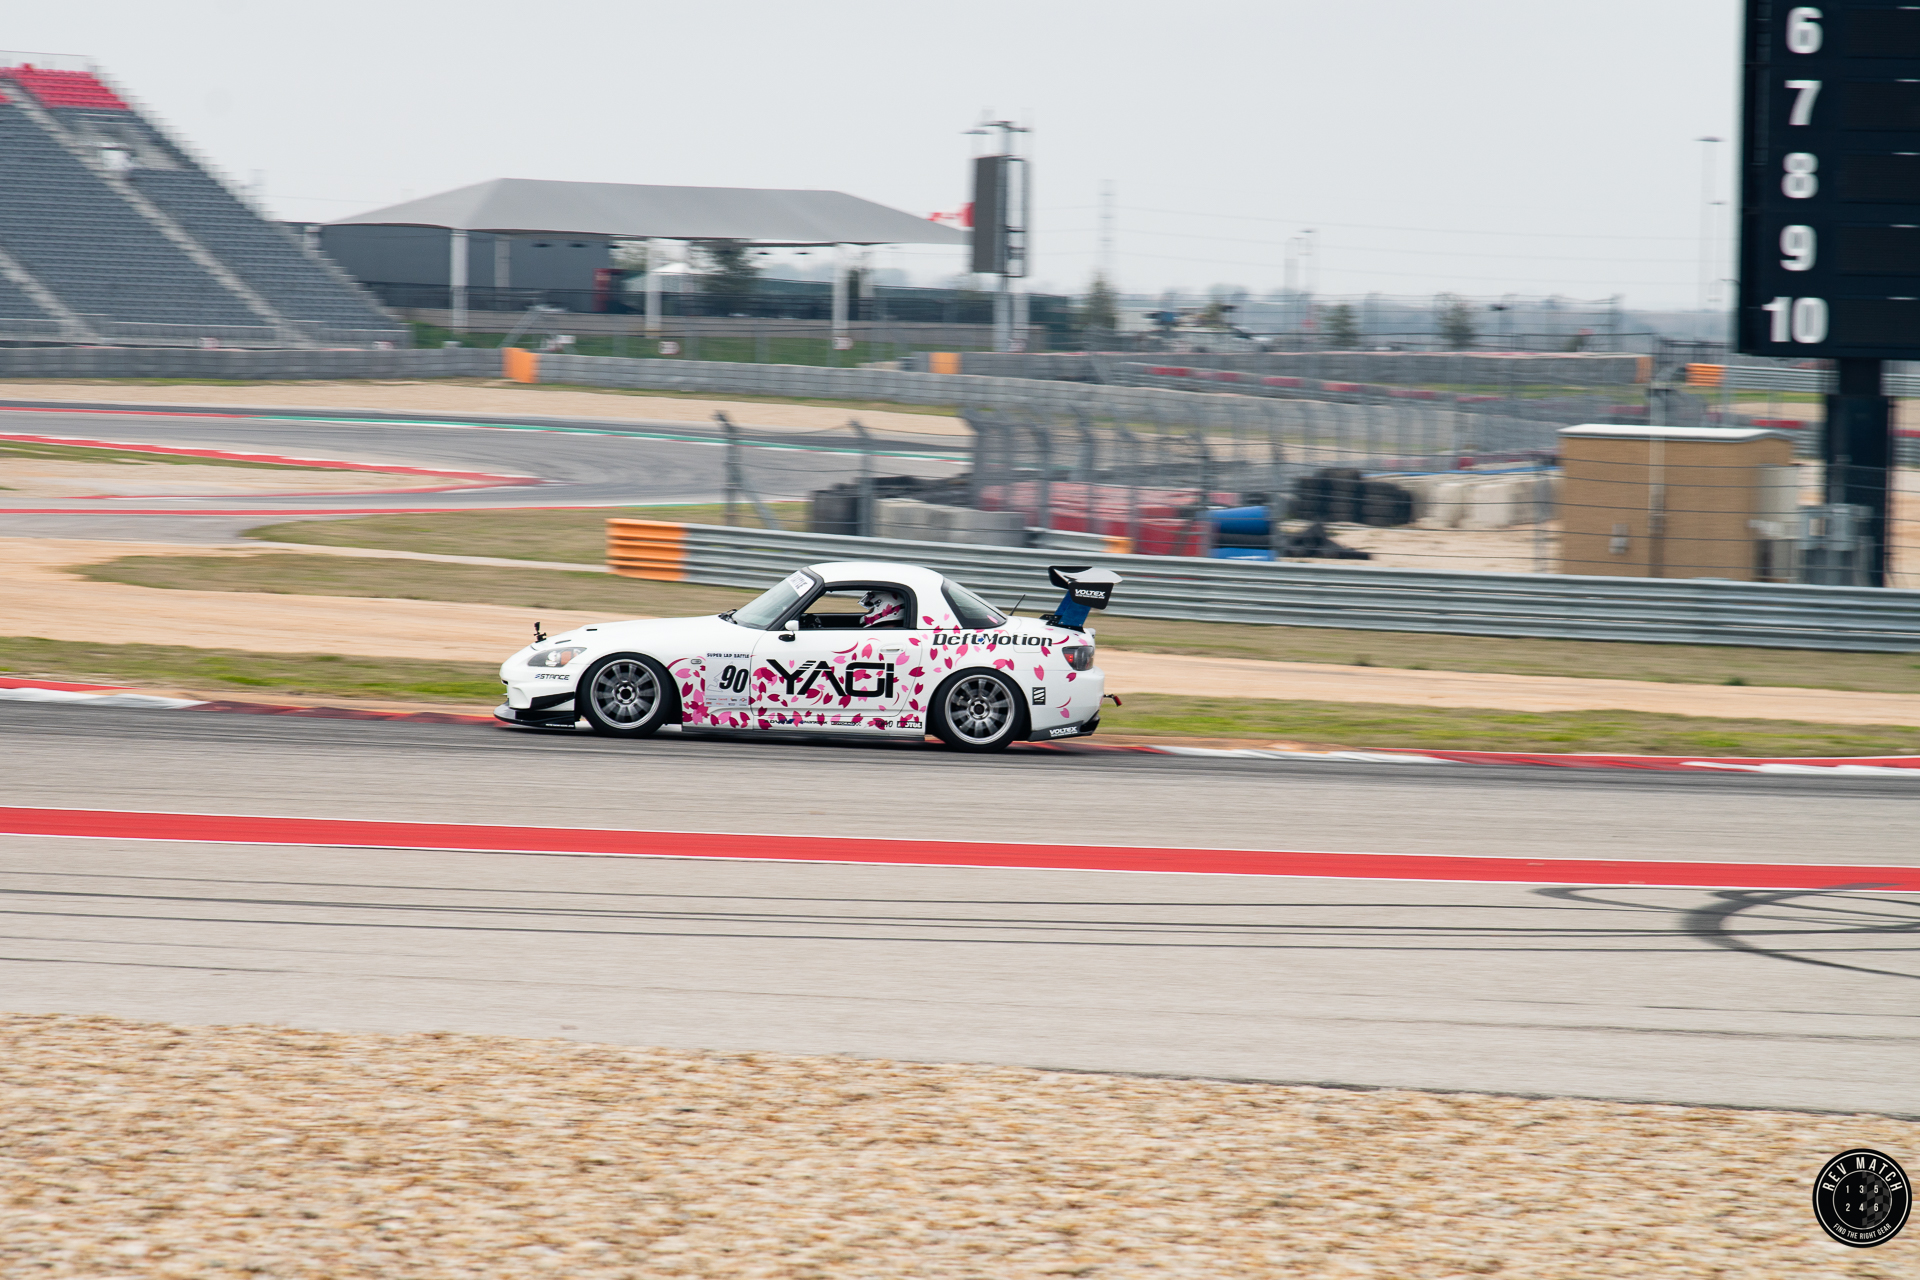 Super Lap Battle COTA Rev Match Media-229.jpg